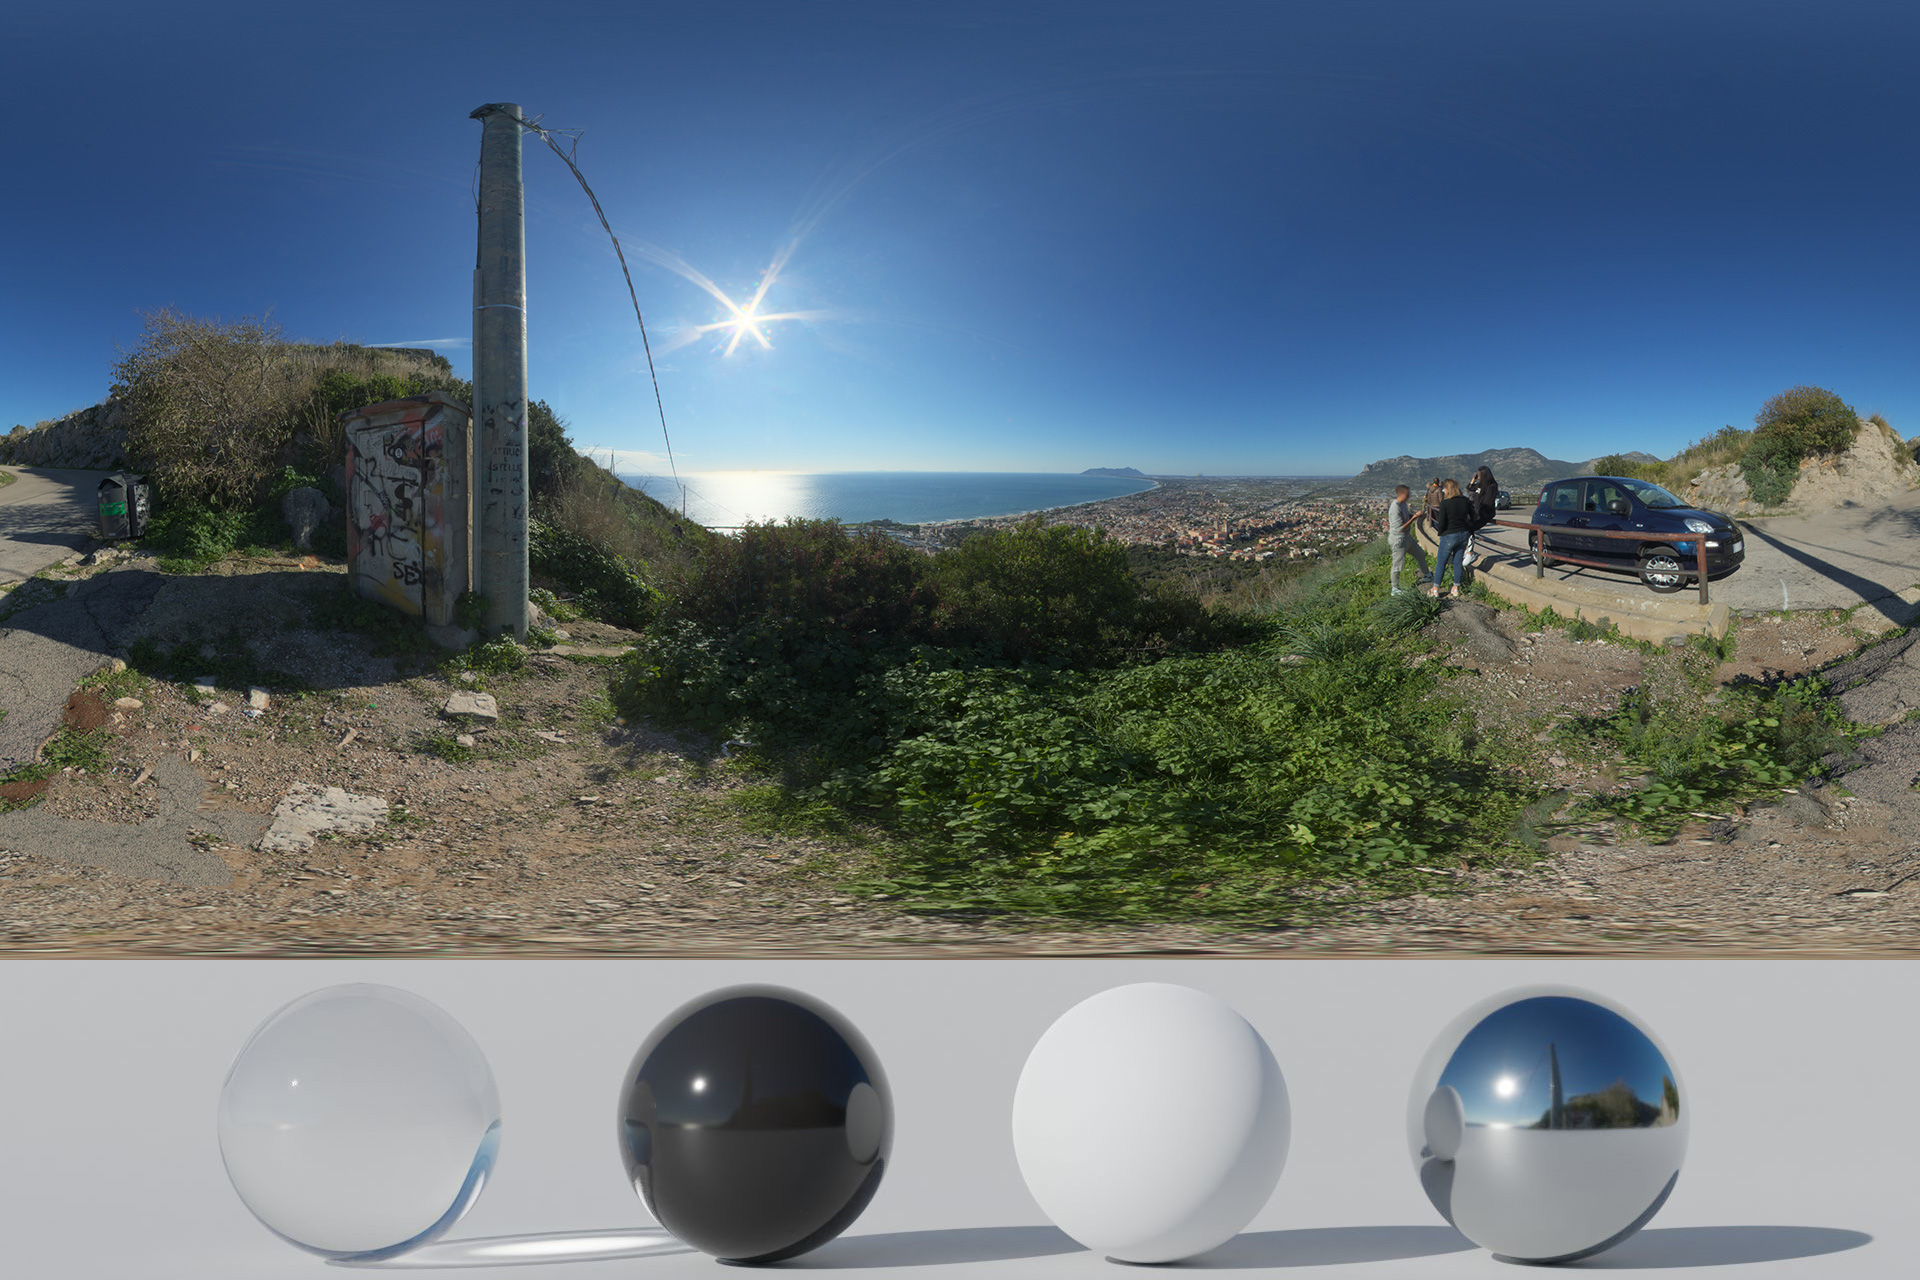 HDRi – Sea, Mountains And Panorama